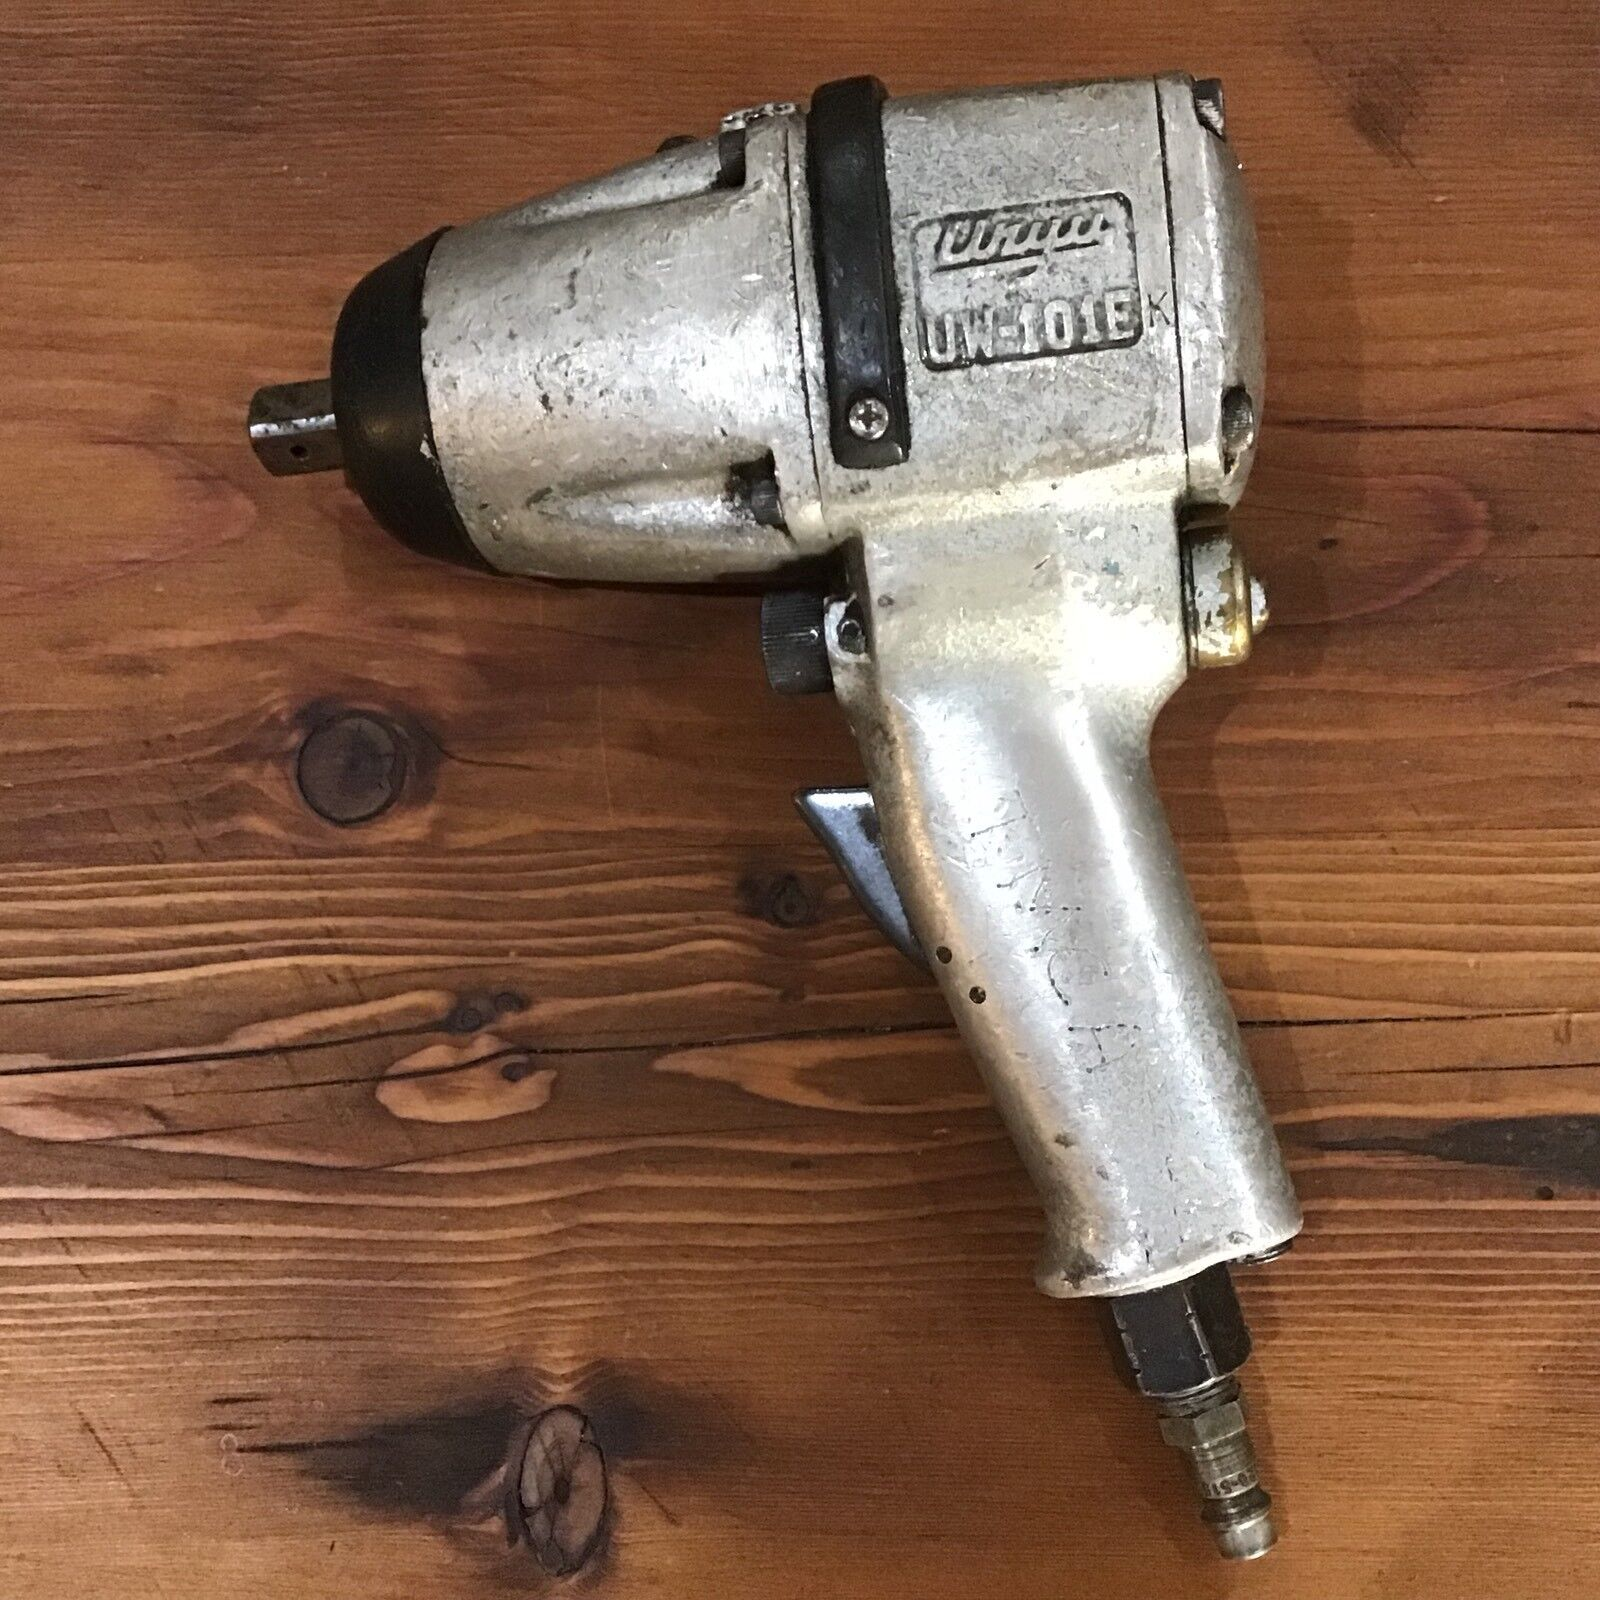 "URYU UW-101E Impact Wrench 1/2""drive, Made In Japan"